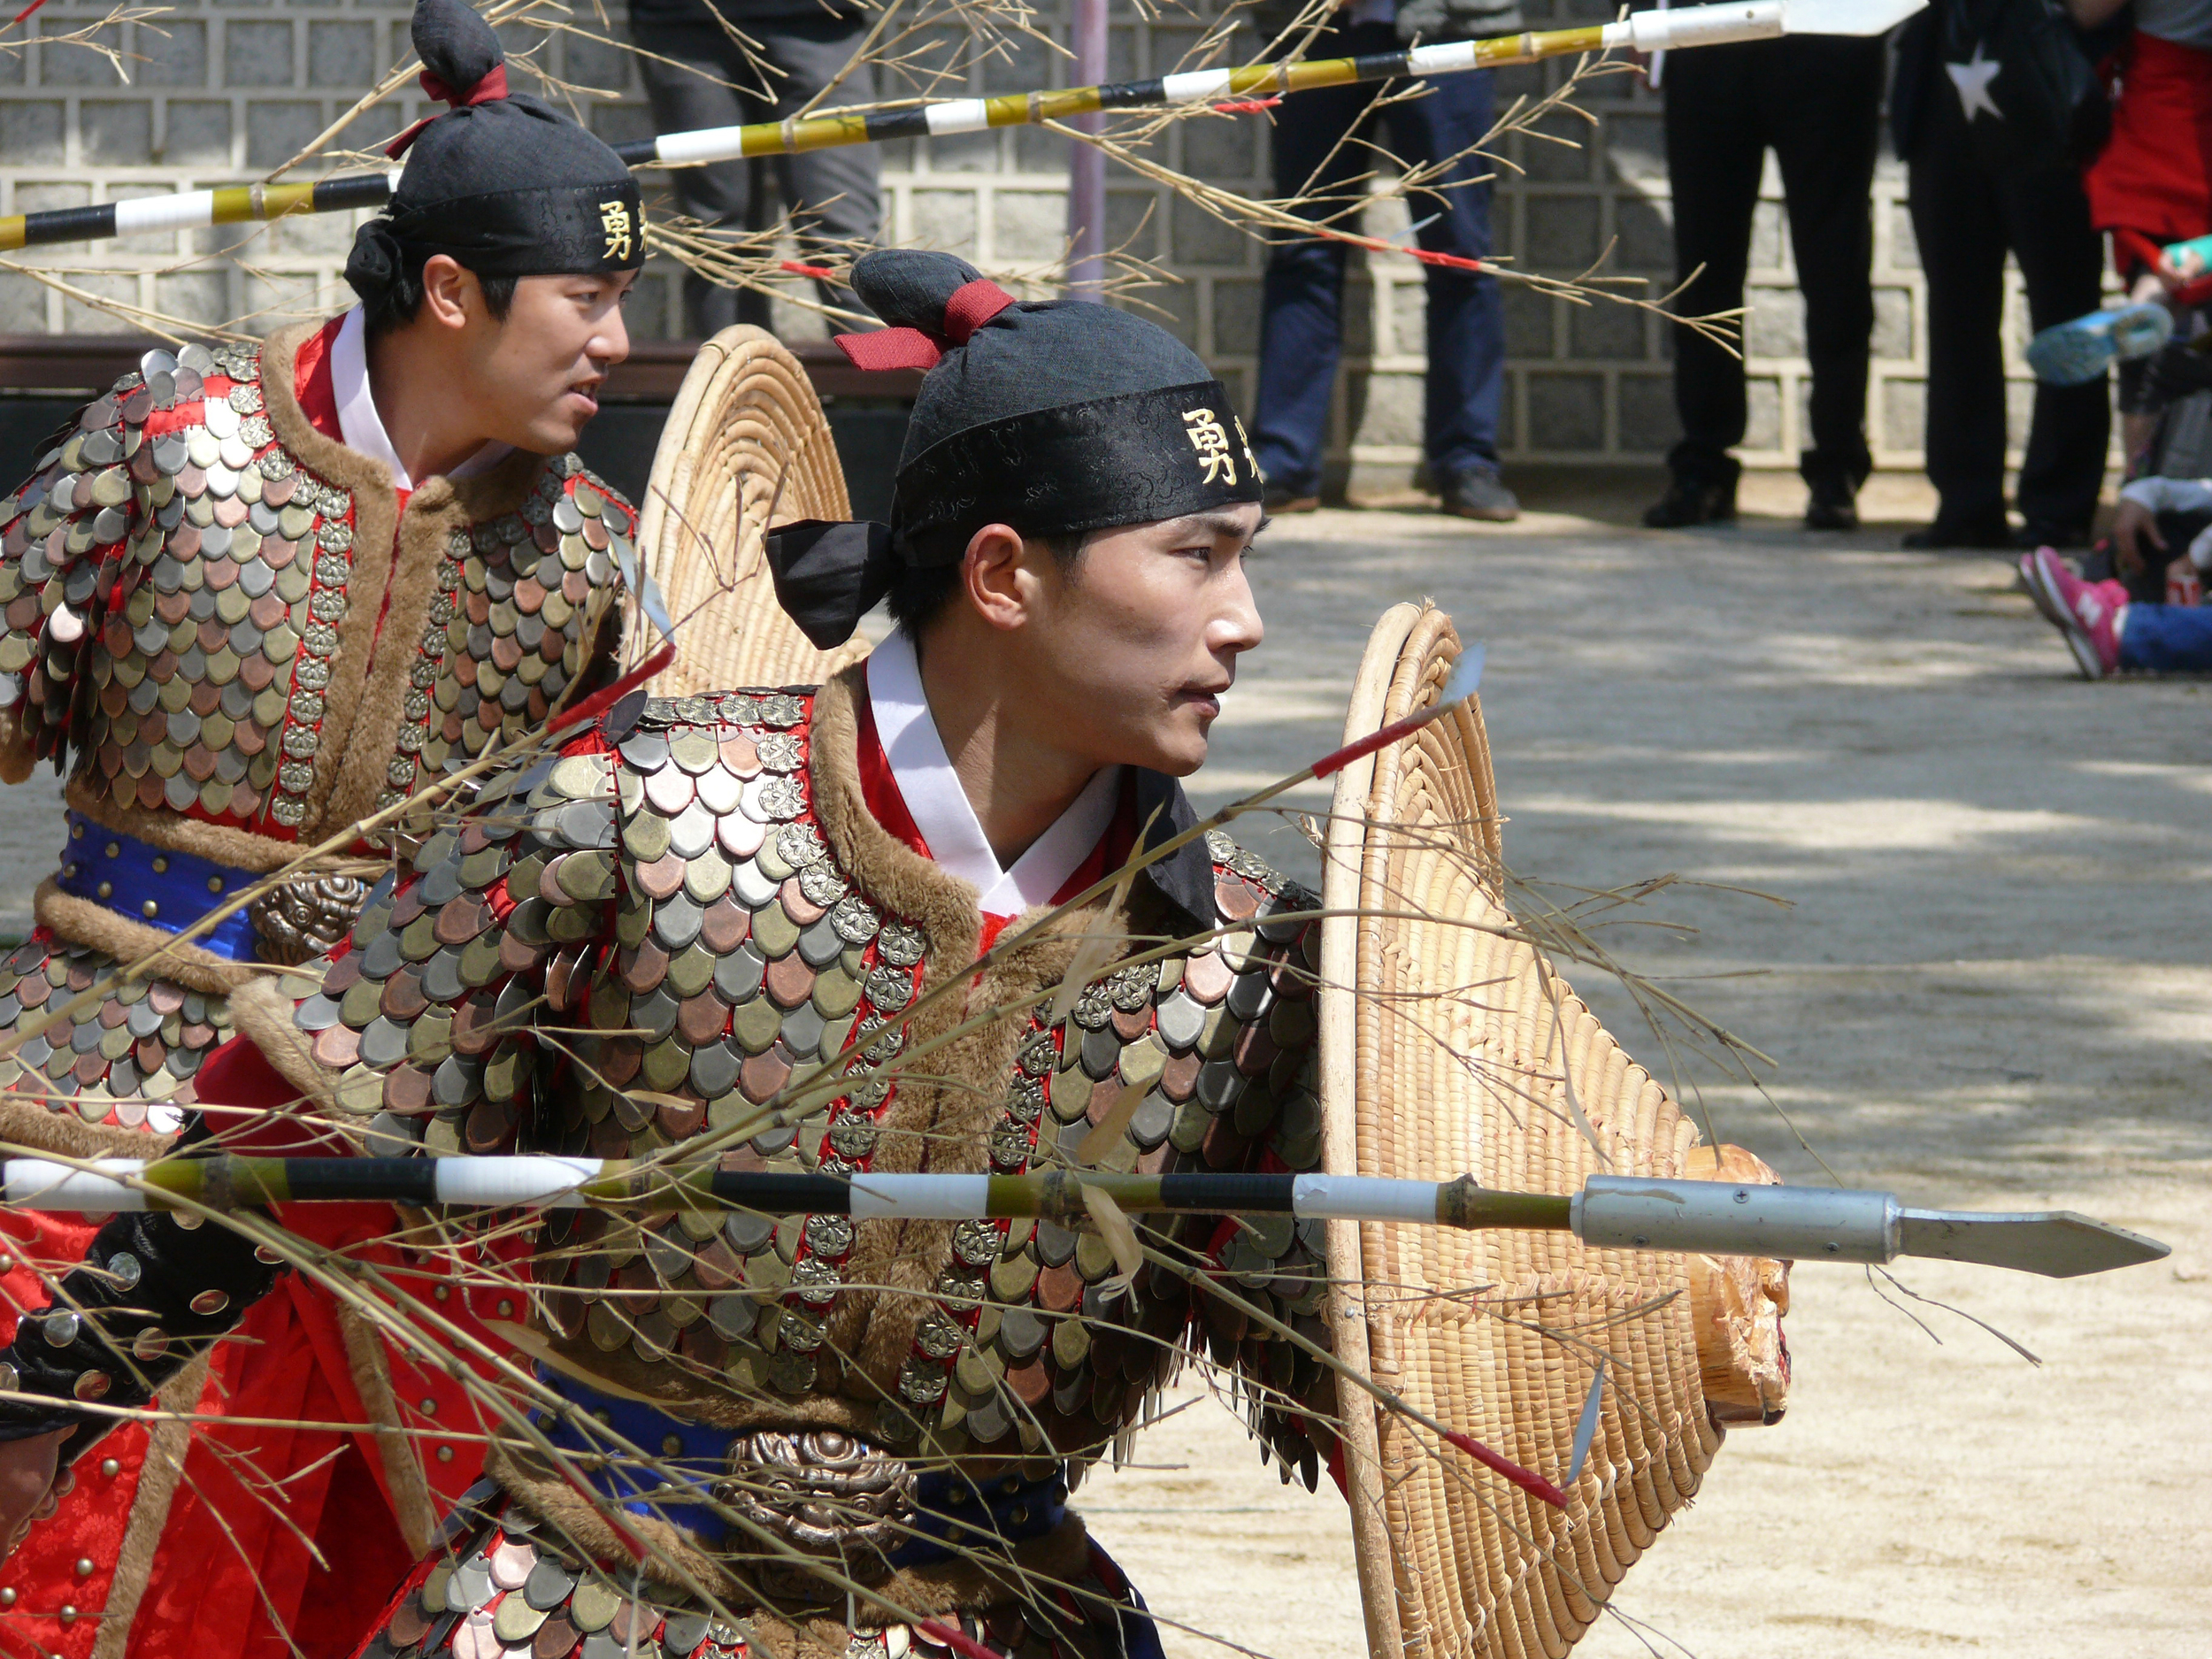 Historical re-enactors put on daily displays of mock combat at the Su Won Fortress.